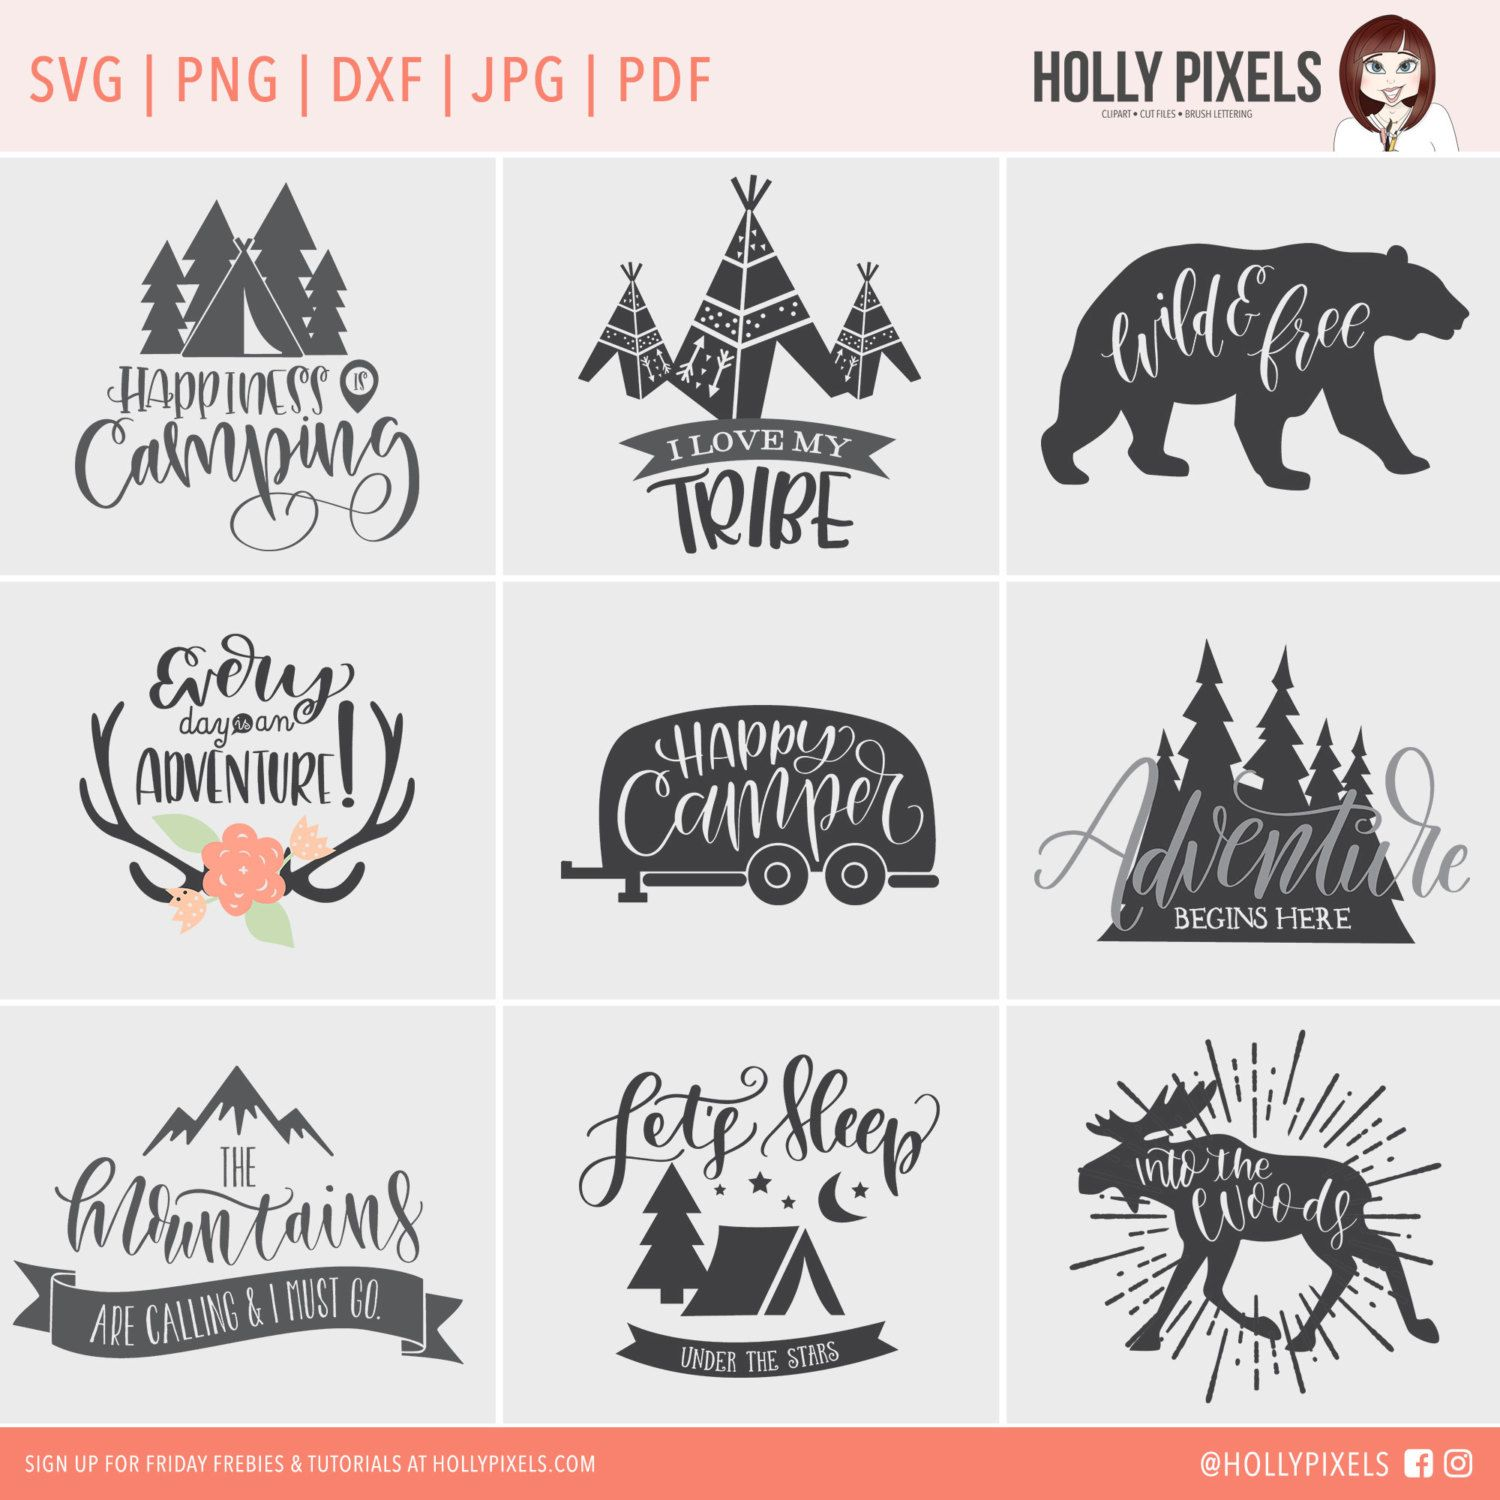 Camping Svg Files Bundle With Family Quotes By Hollypixels On Etsy Https Www Etsy Com Listing 497974887 Camping Svg F Cricut Free Svg Files For Cricut Cricut